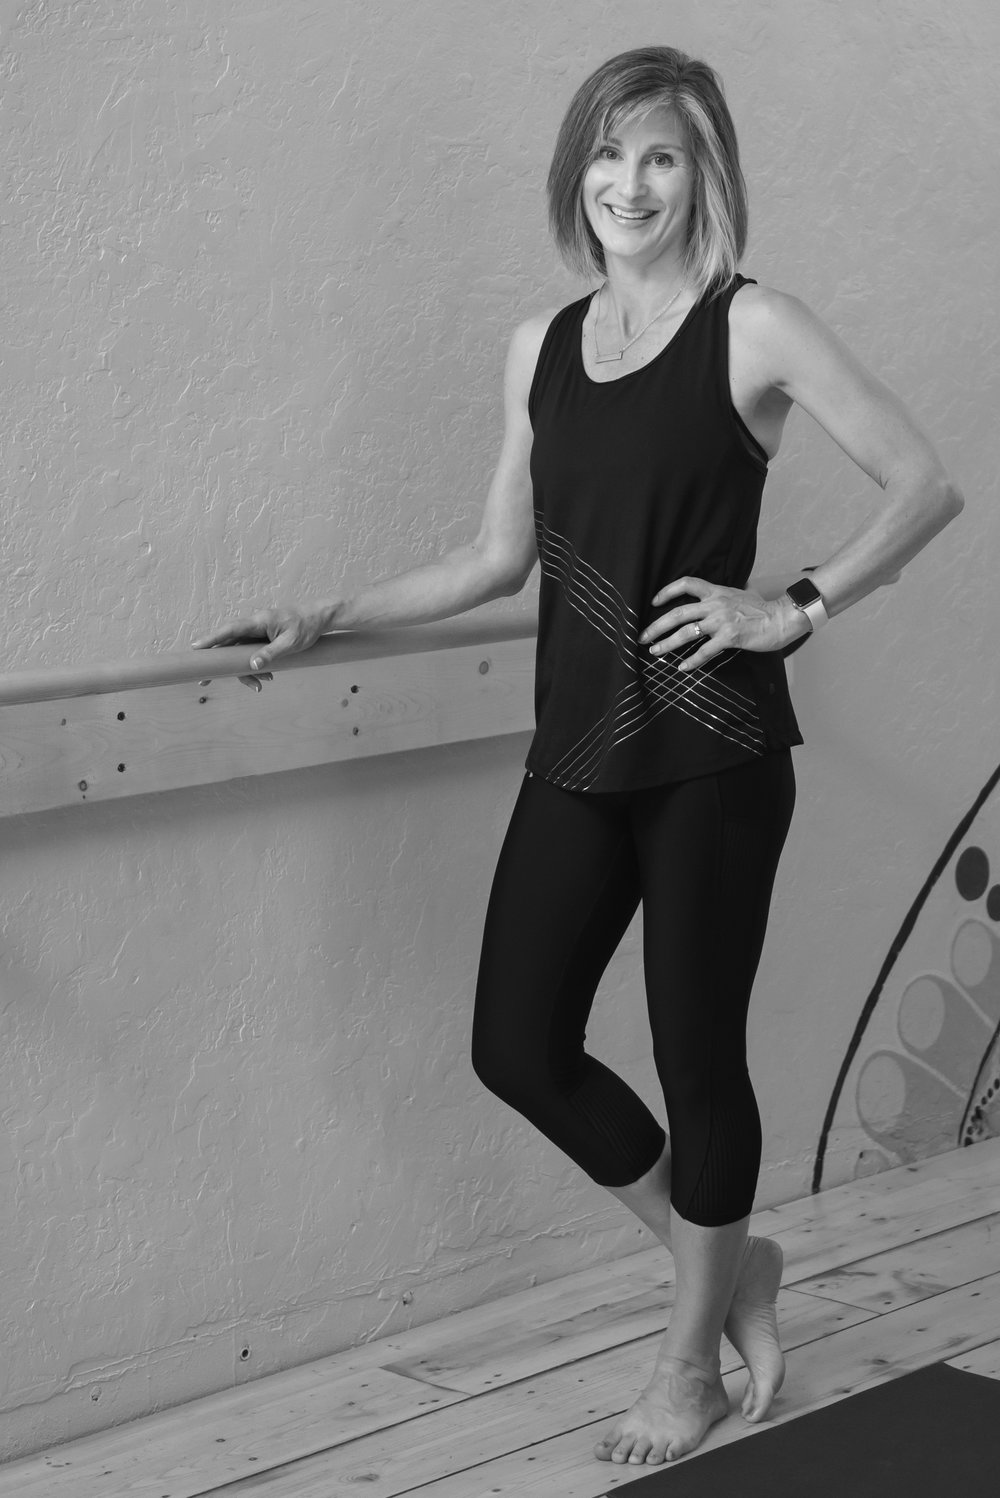 SHELIA WELLE - INSTRUCTOR